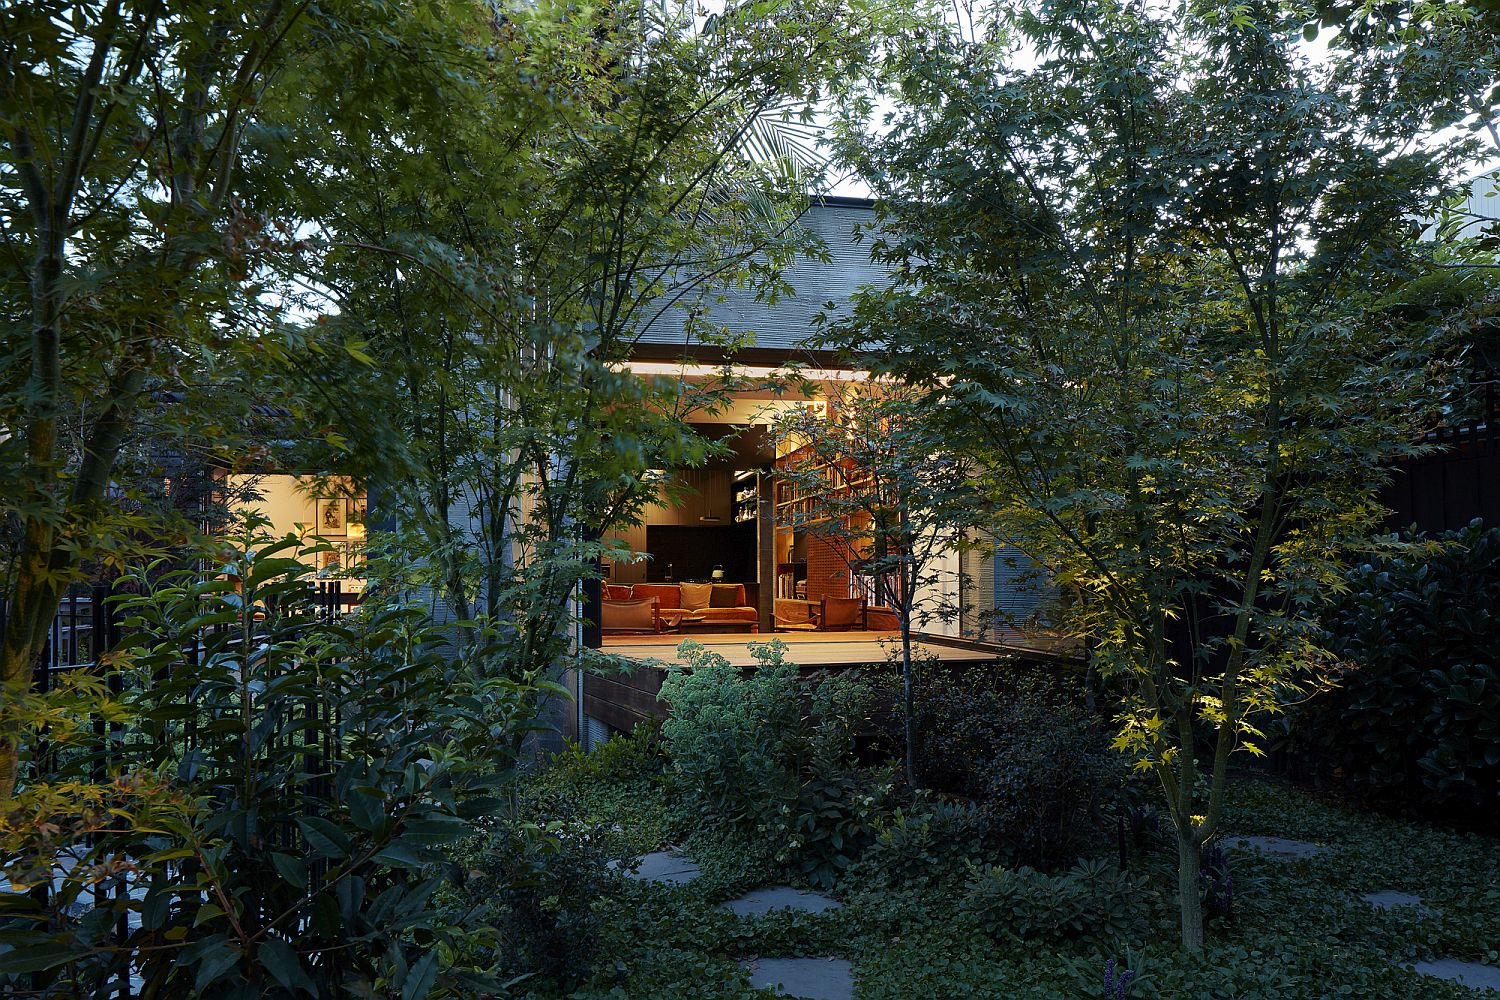 Exquisite-garden-adds-ample-greenery-to-the-private-backyard